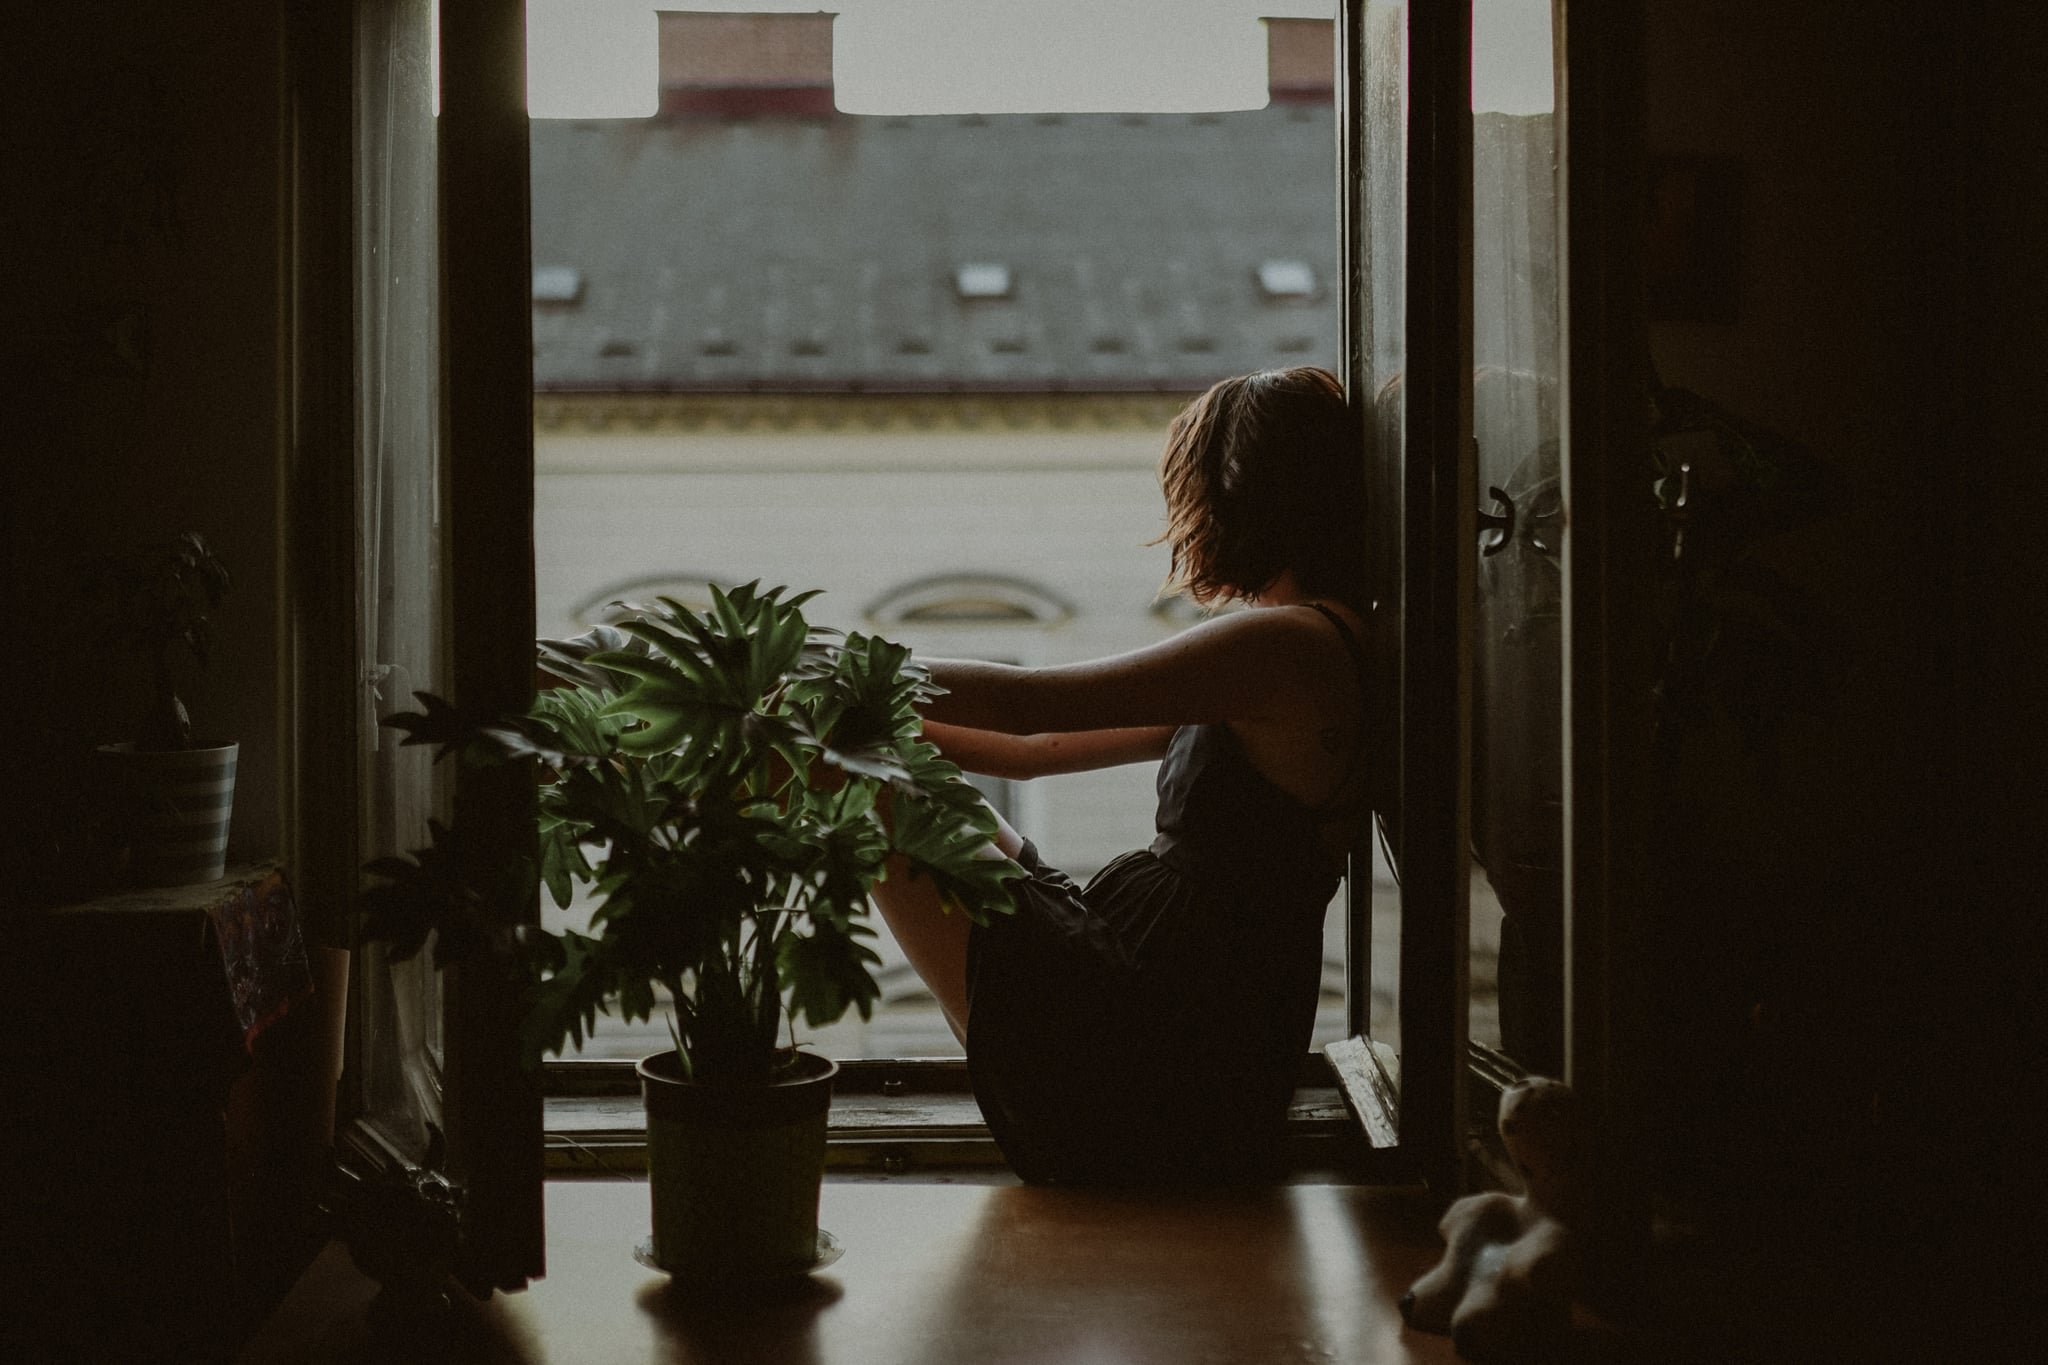 How I Finally Learned to Accept My Depression